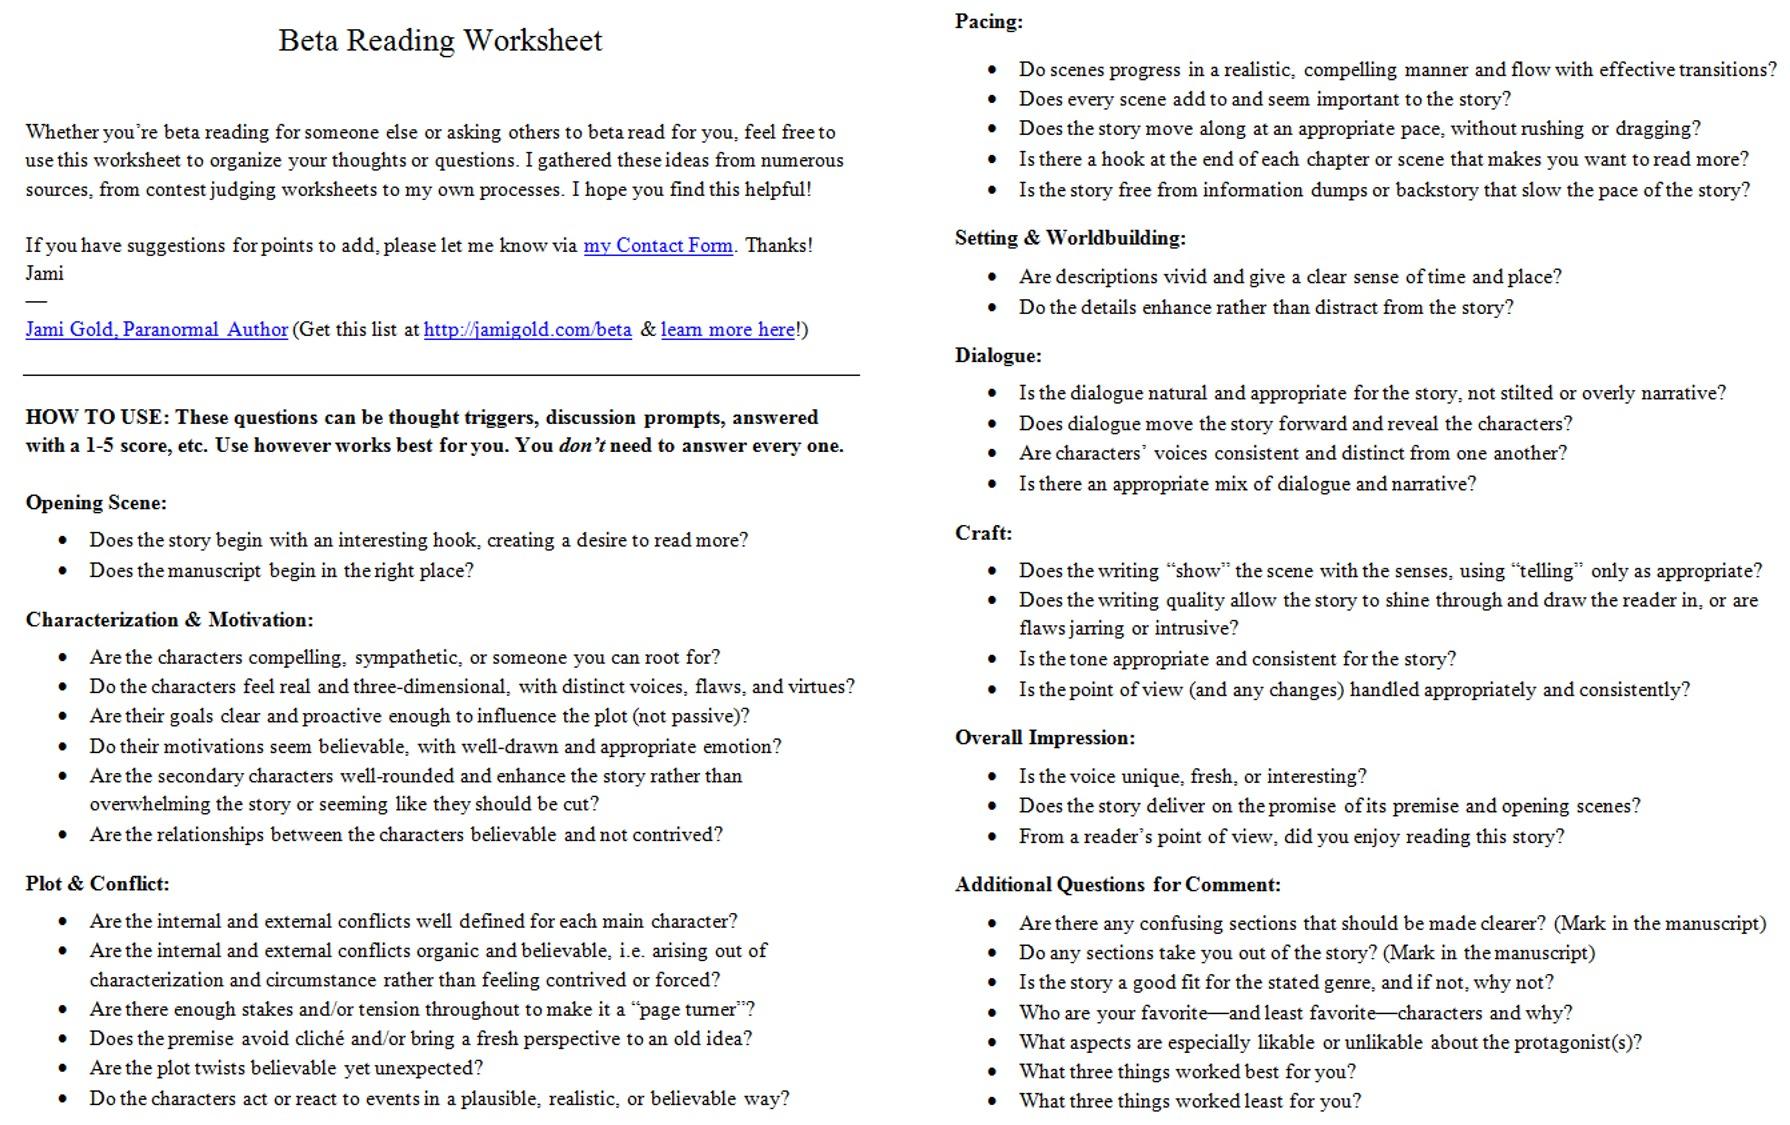 Proatmealus  Winsome Worksheets For Writers  Jami Gold Paranormal Author With Outstanding Screen Shot Of The Twopage Beta Reading Worksheet With Awesome Kid Math Worksheets Also Label The Brain Worksheet In Addition Create Addition Worksheets And Self Employed Worksheet As Well As Coordinating Conjunction Worksheets Additionally Find Common Denominator Worksheet From Jamigoldcom With Proatmealus  Outstanding Worksheets For Writers  Jami Gold Paranormal Author With Awesome Screen Shot Of The Twopage Beta Reading Worksheet And Winsome Kid Math Worksheets Also Label The Brain Worksheet In Addition Create Addition Worksheets From Jamigoldcom